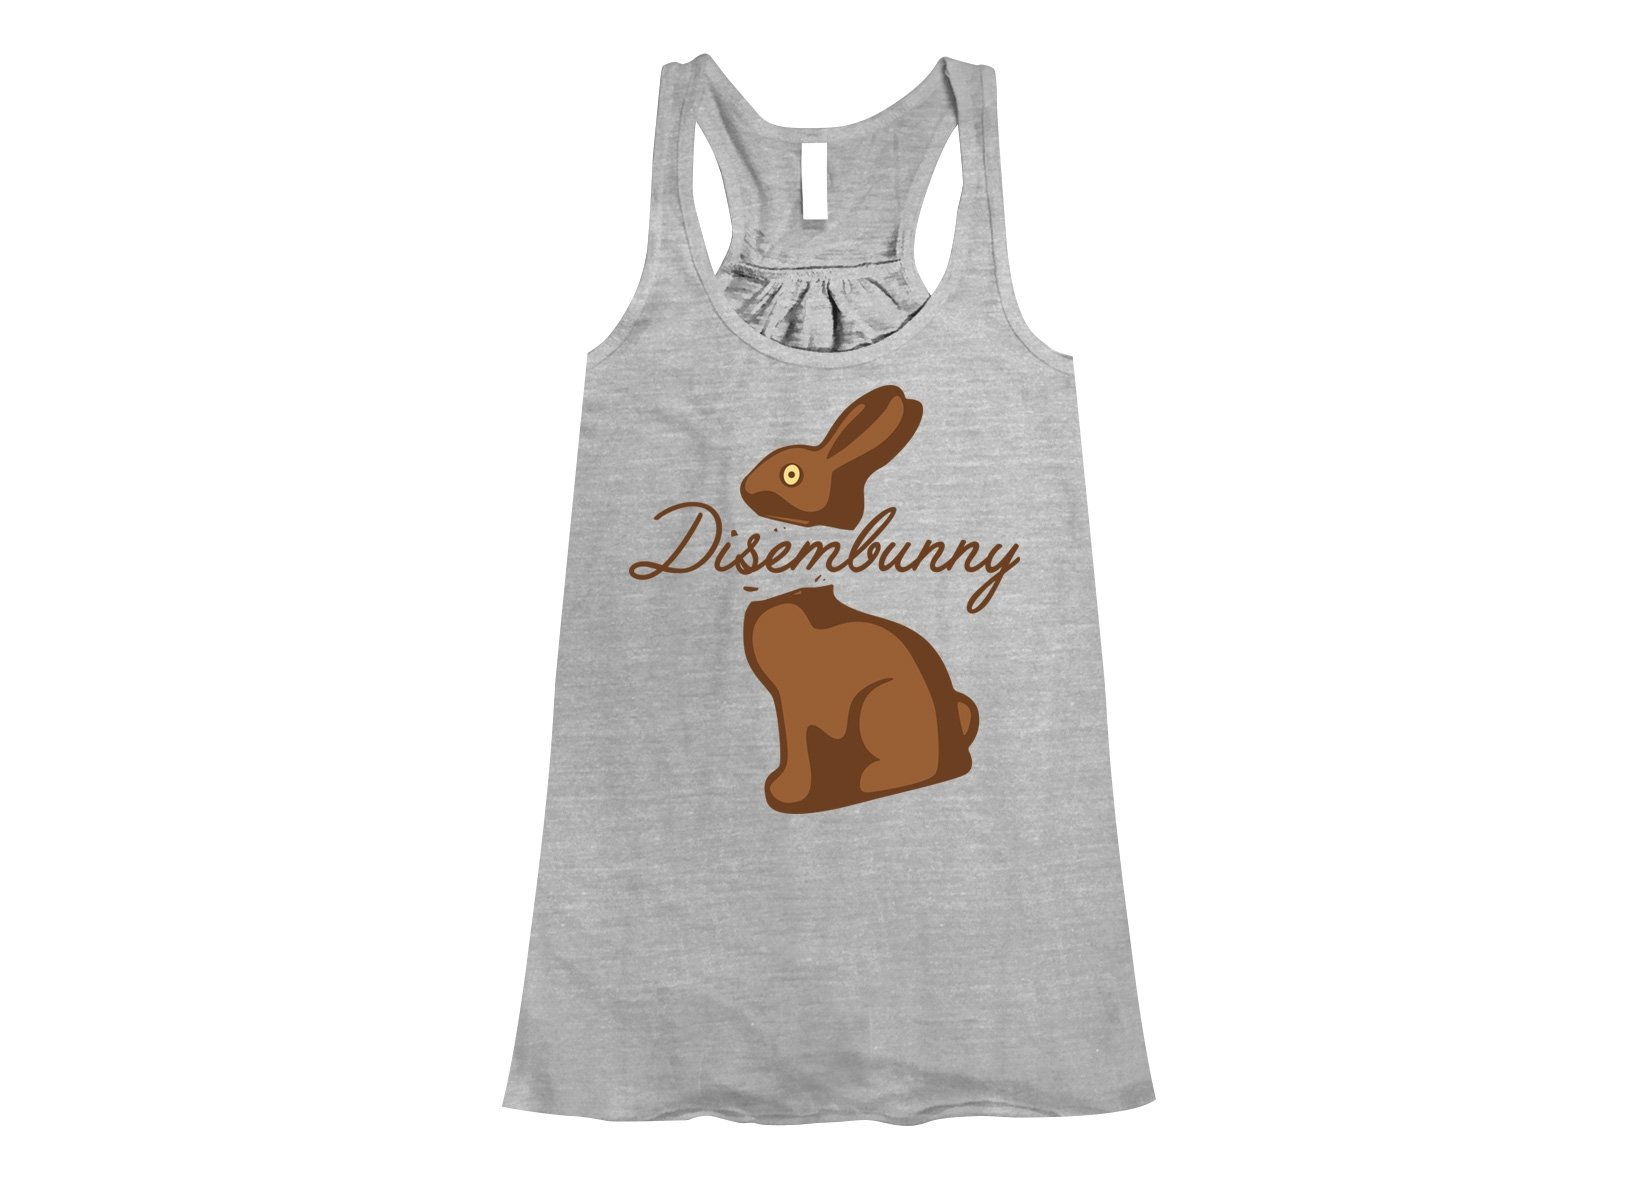 Disembunny on Womens Tanks T-Shirt